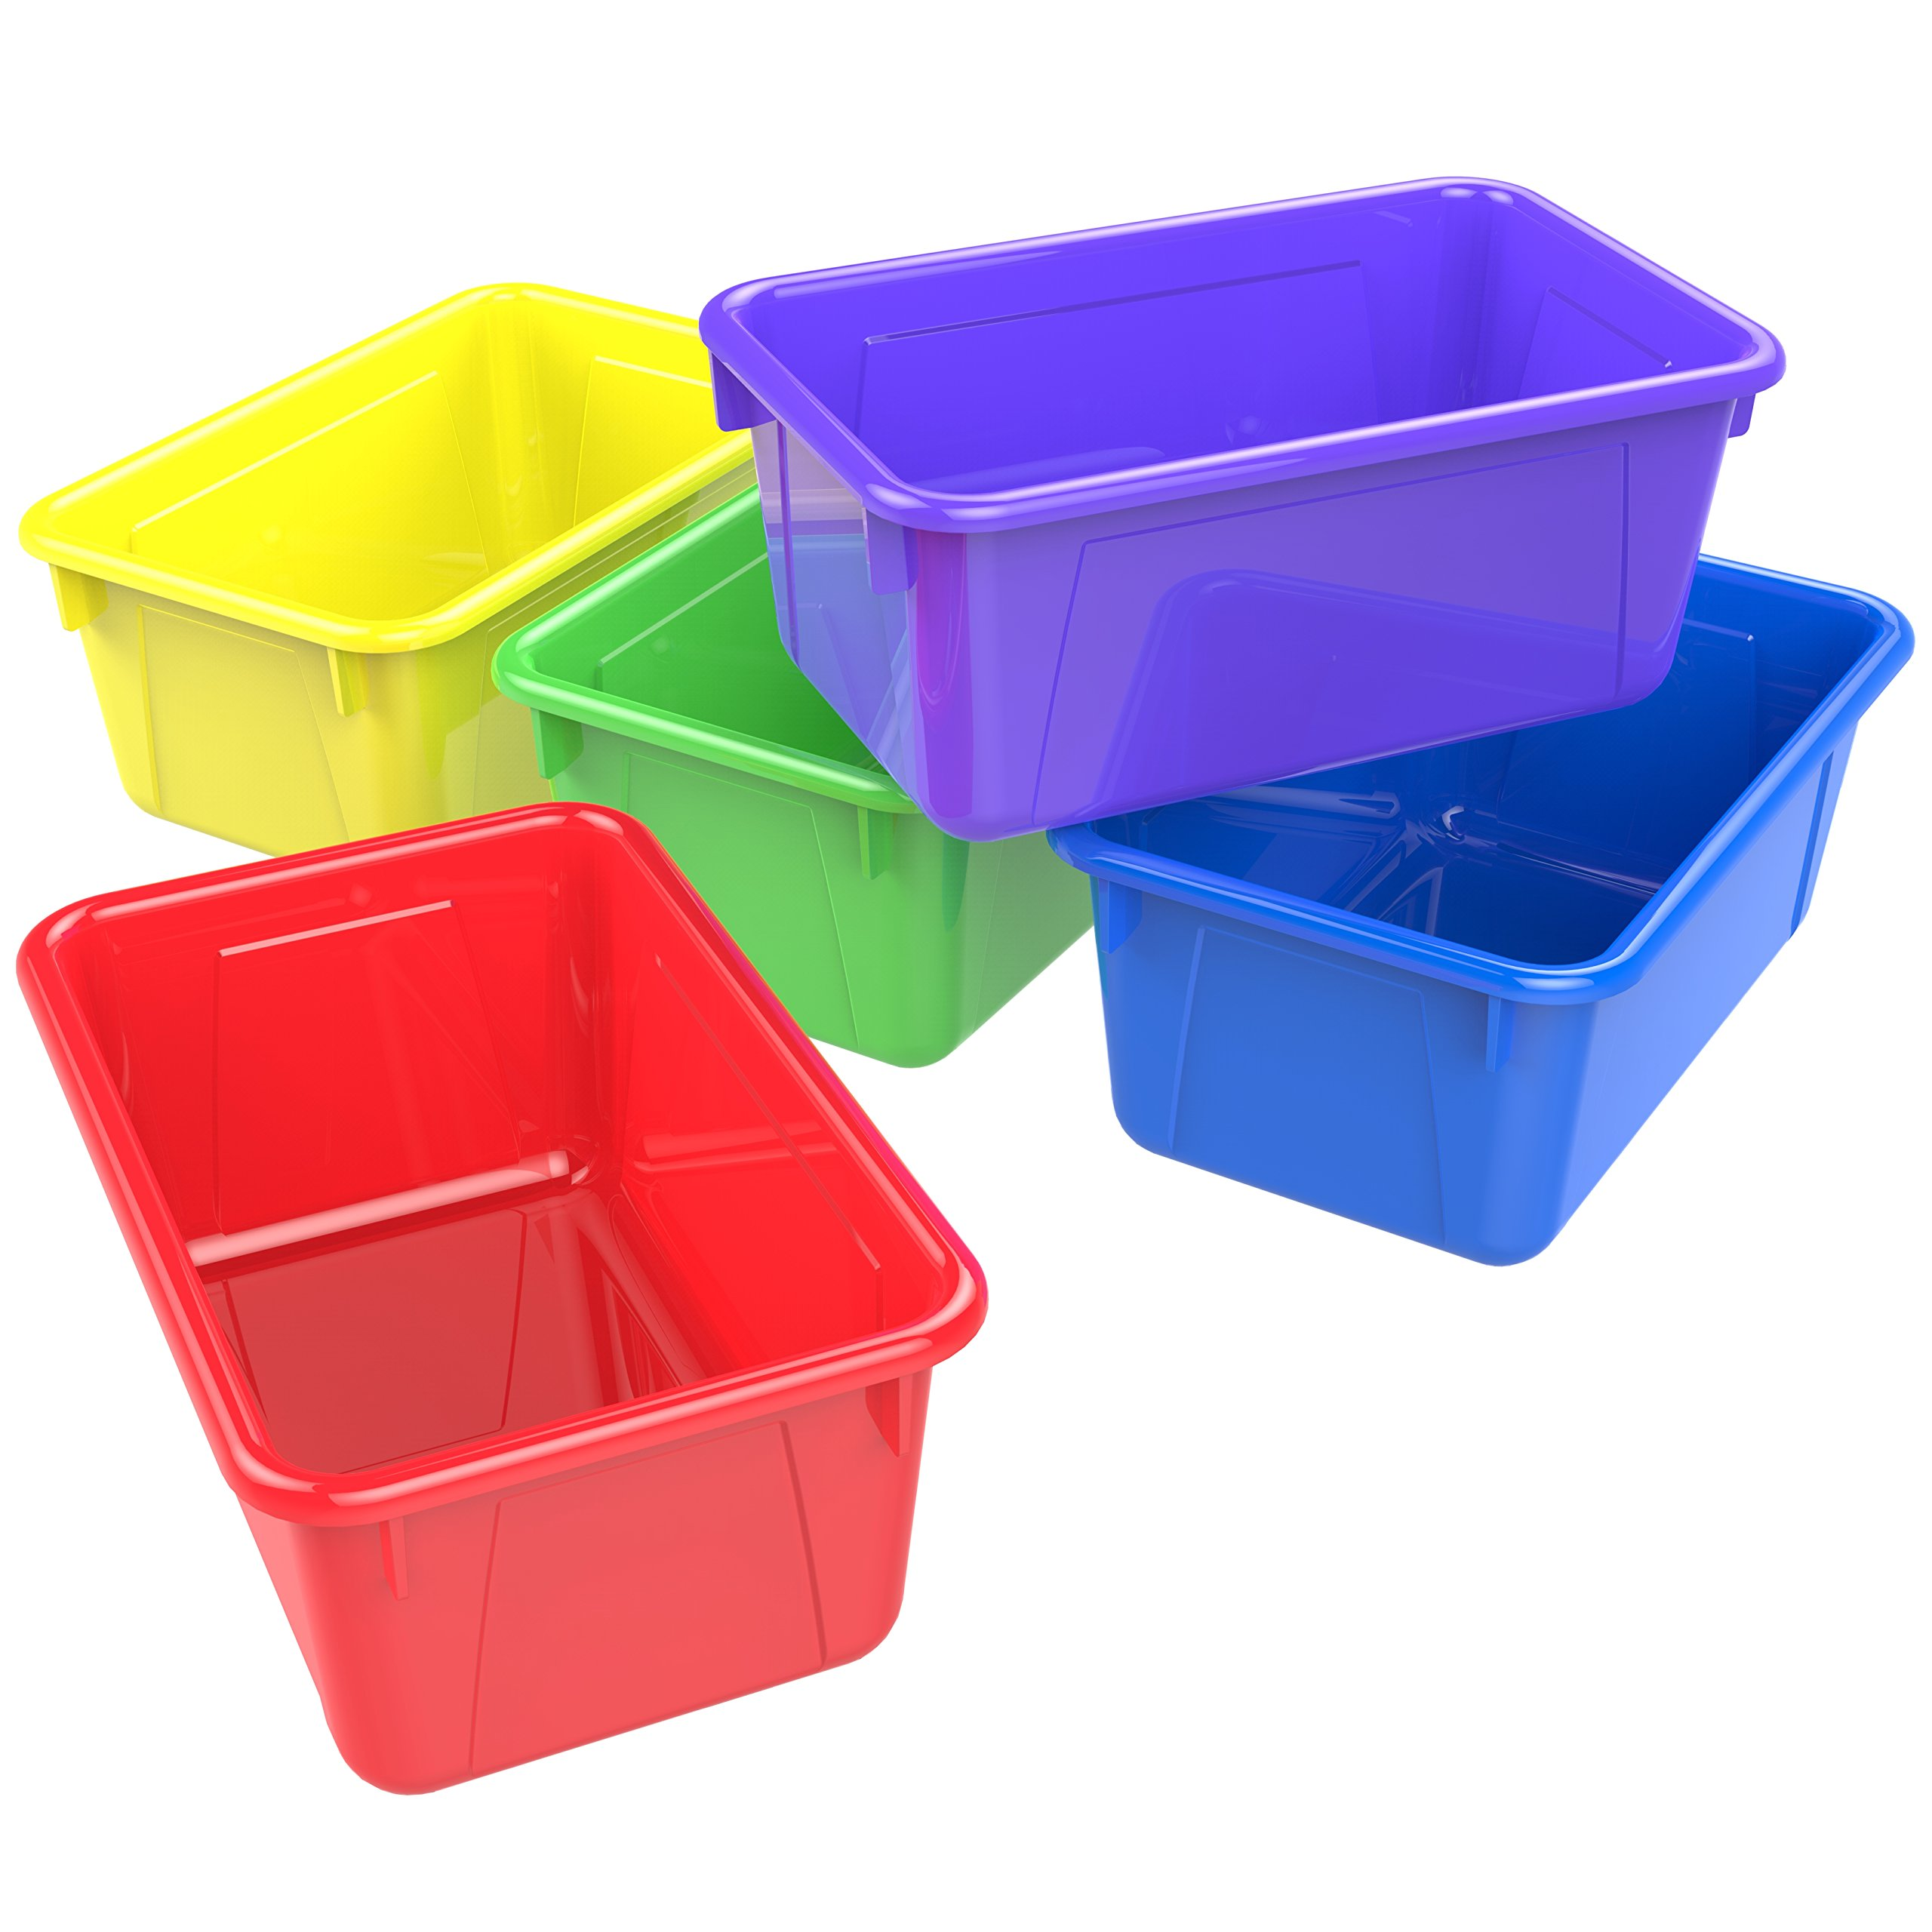 Storex 62414U05C Small Cubby Bin, Plastic Storage Container Fits Classroom Cubbies, Pack of 5, 12.2'' x 7.8'' x 1'', Red, Yellow, Green, Blue, Purple, Teal by Storex